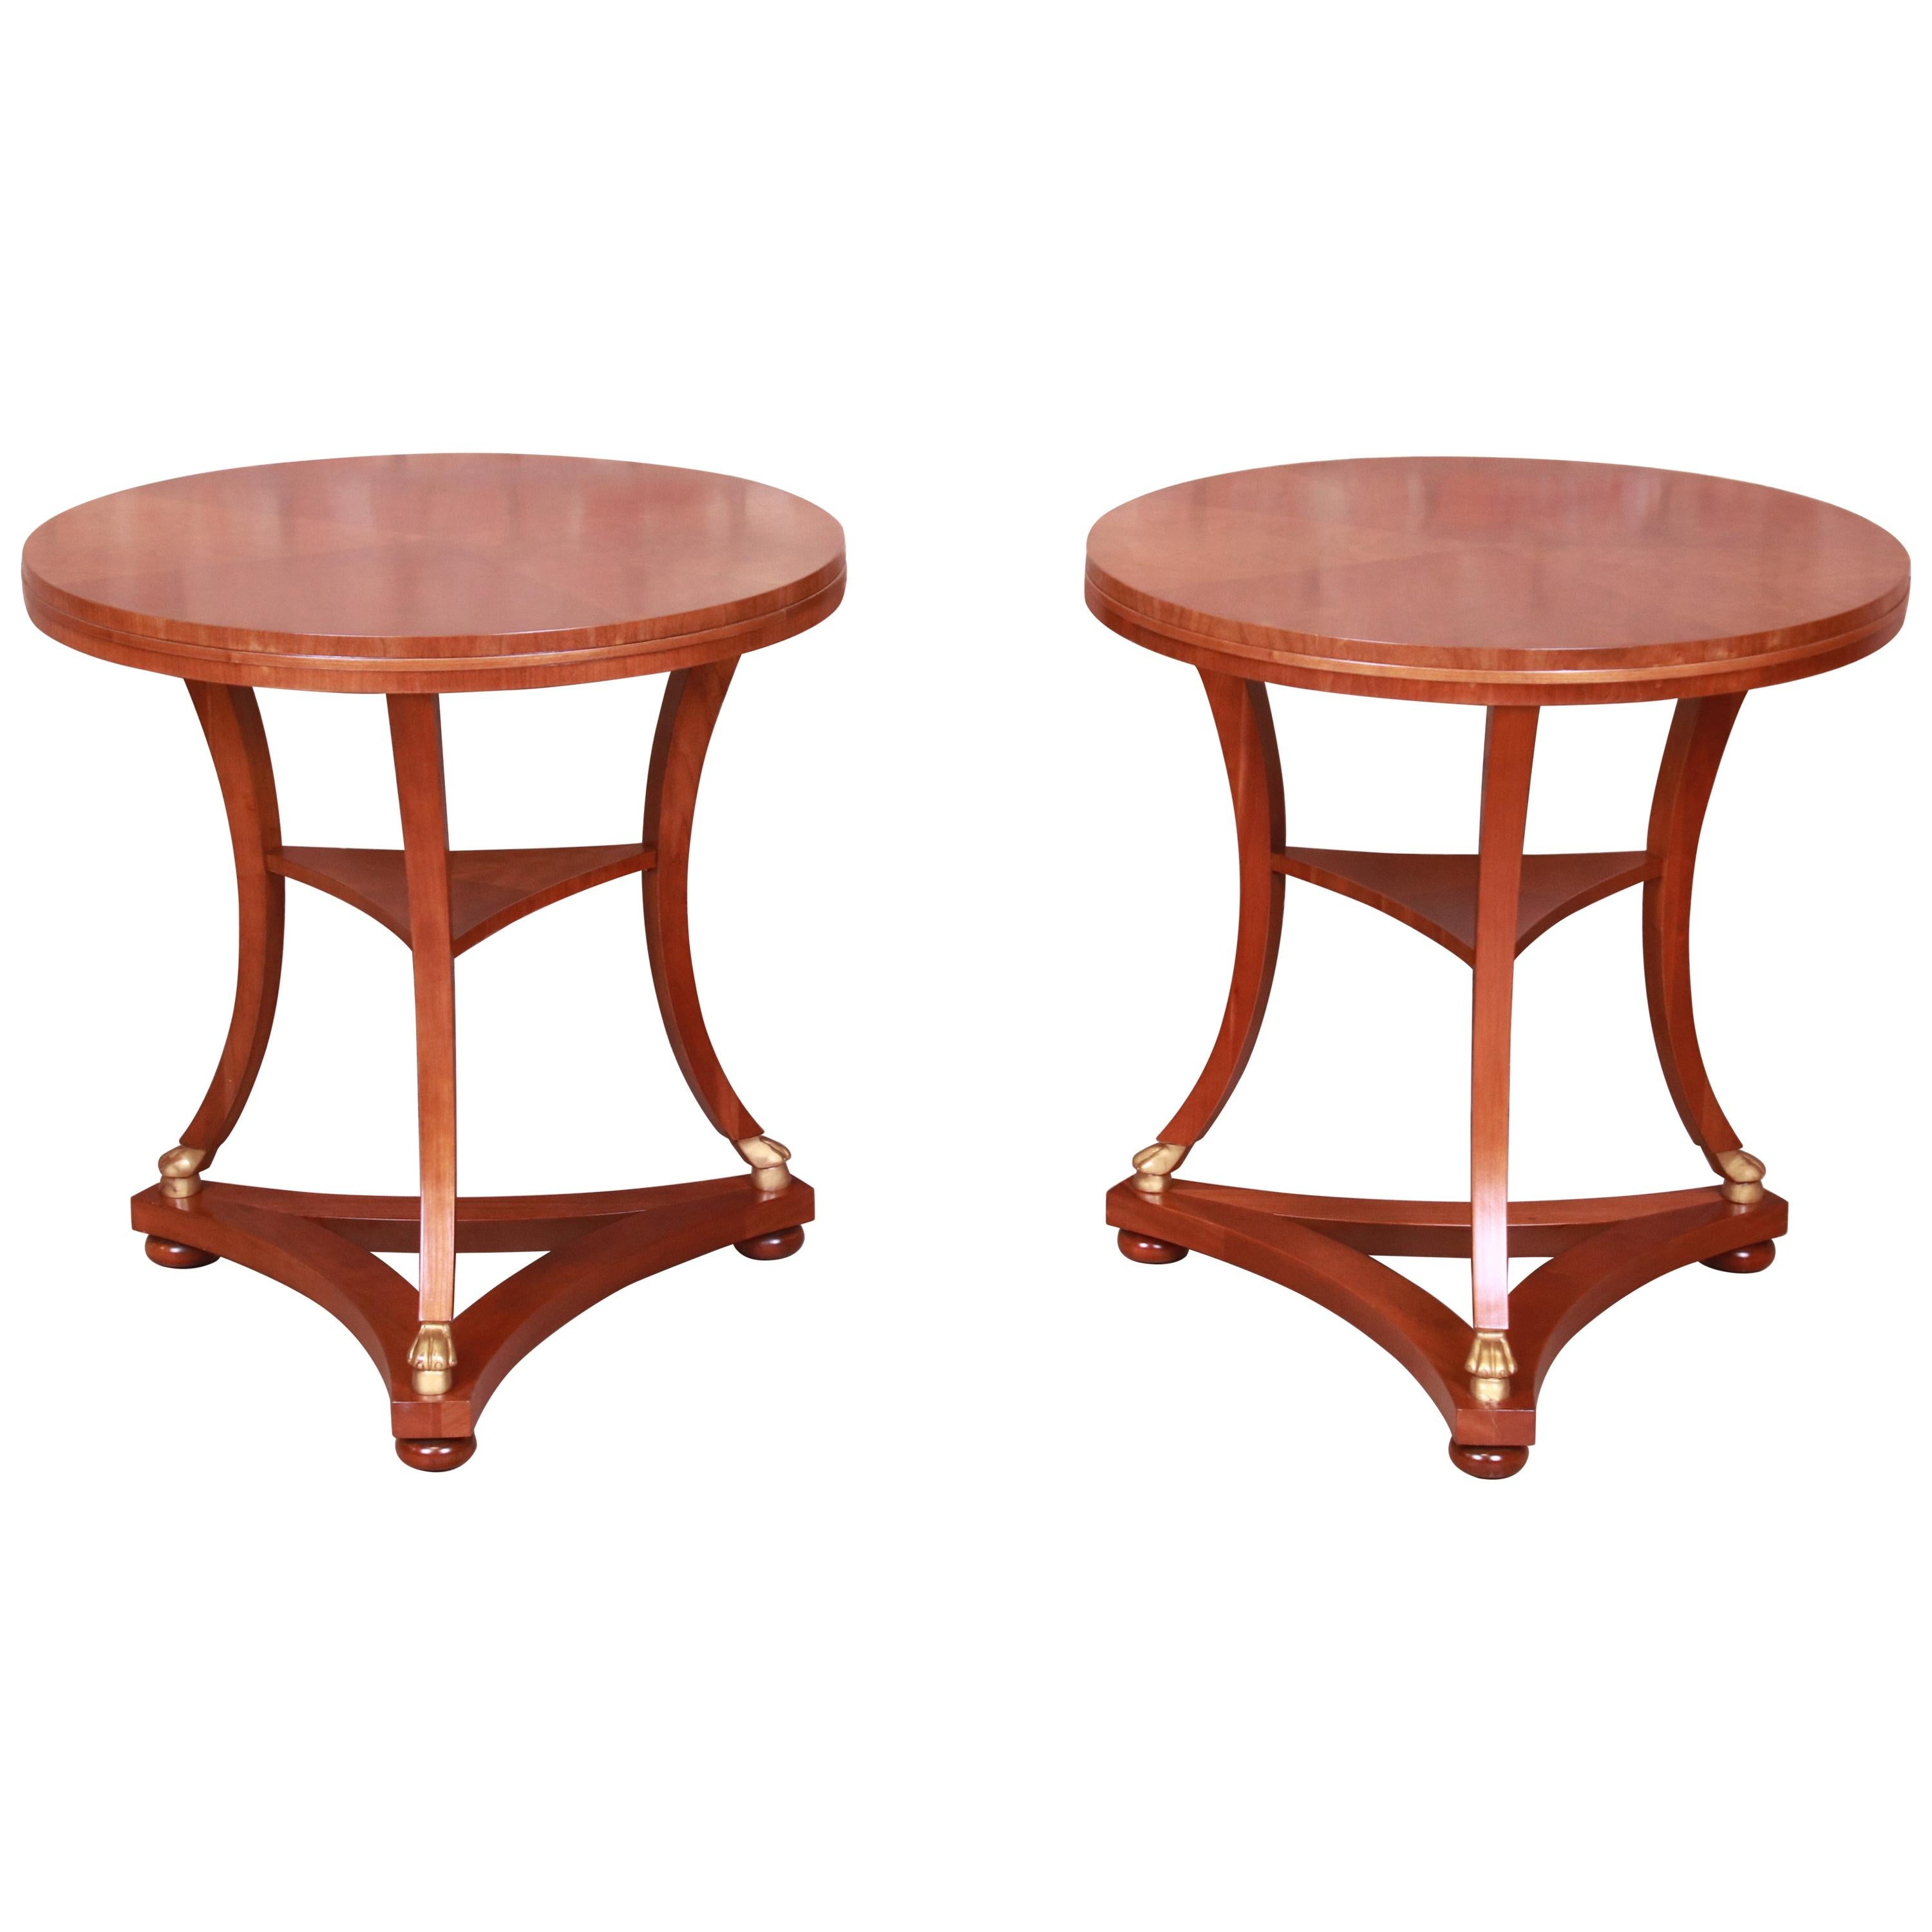 Baker Furniture French Empire Mahogany Side Tables, Newly Refinished